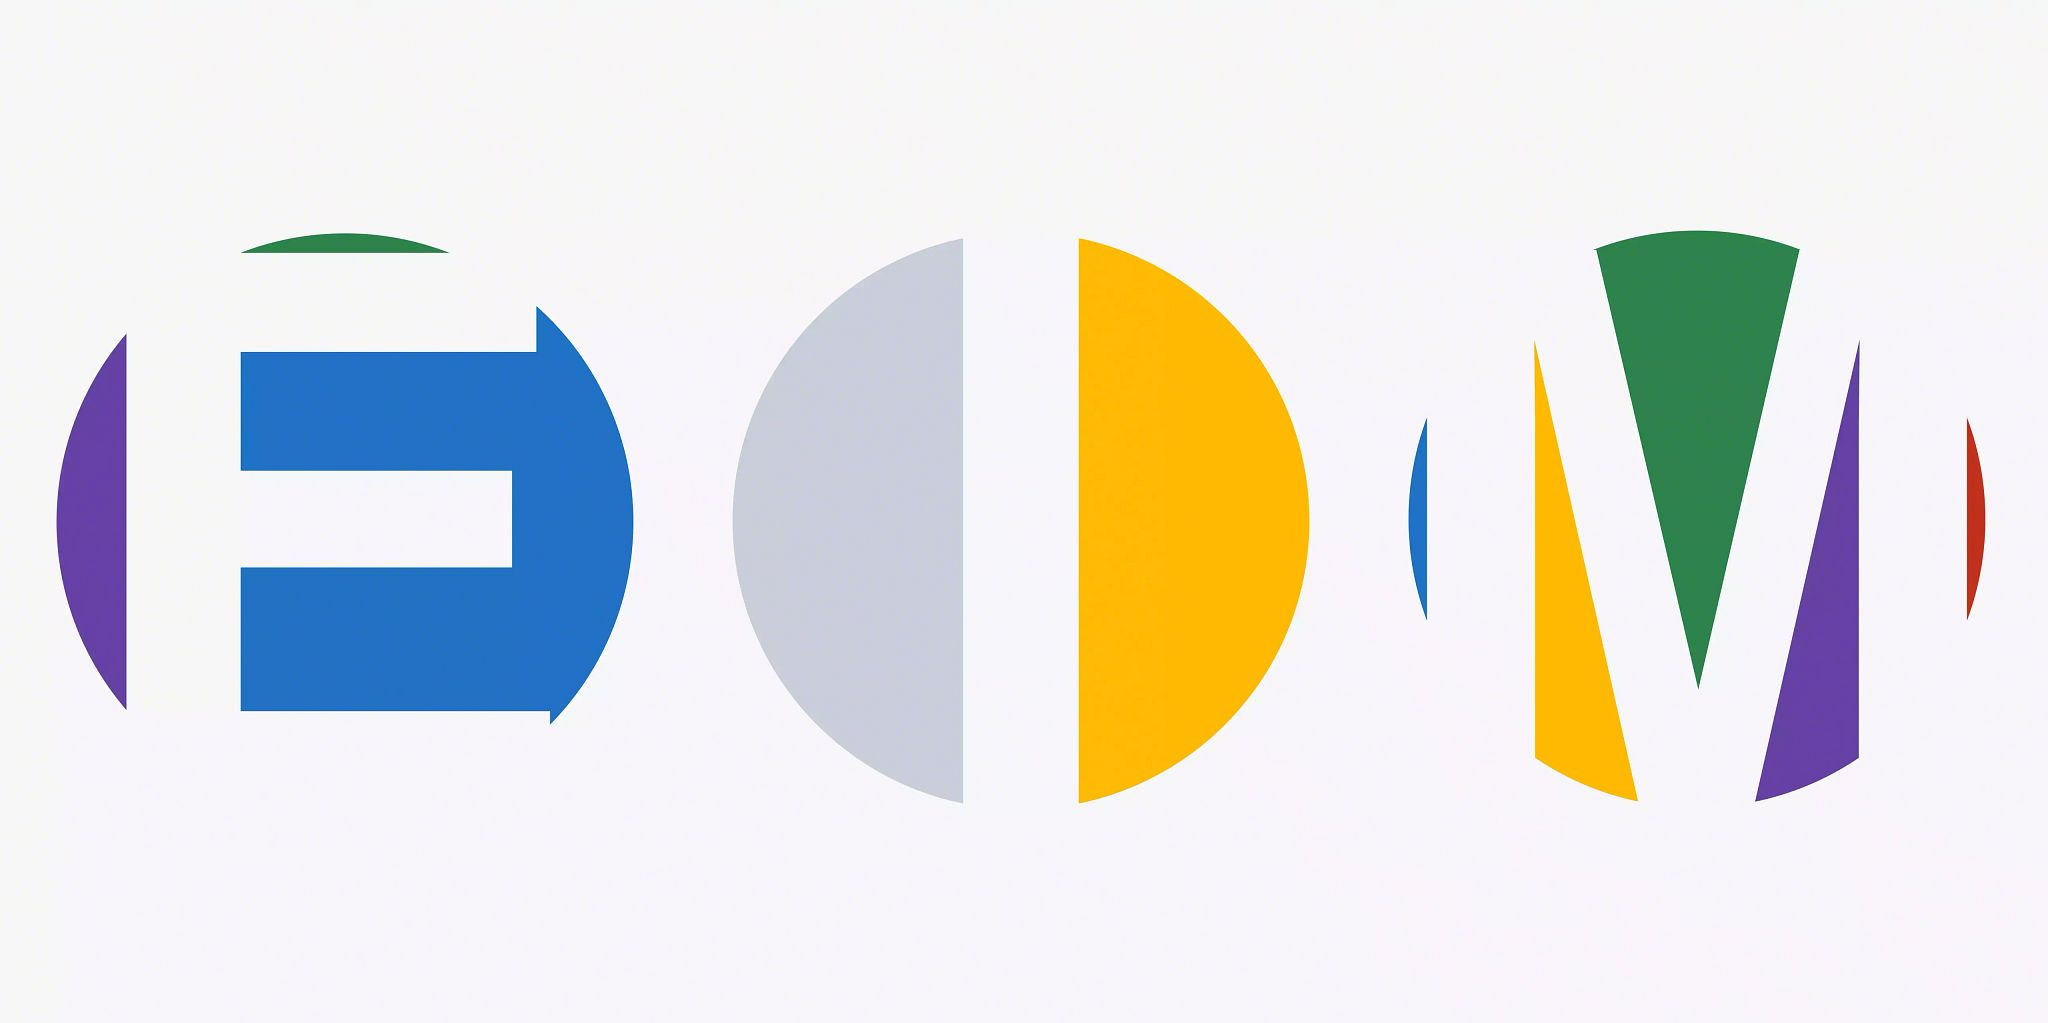 Article header image: The colorful circles evenly spaced on a white background and taking up the width of the graphic with the letter E-I-M in each circle.